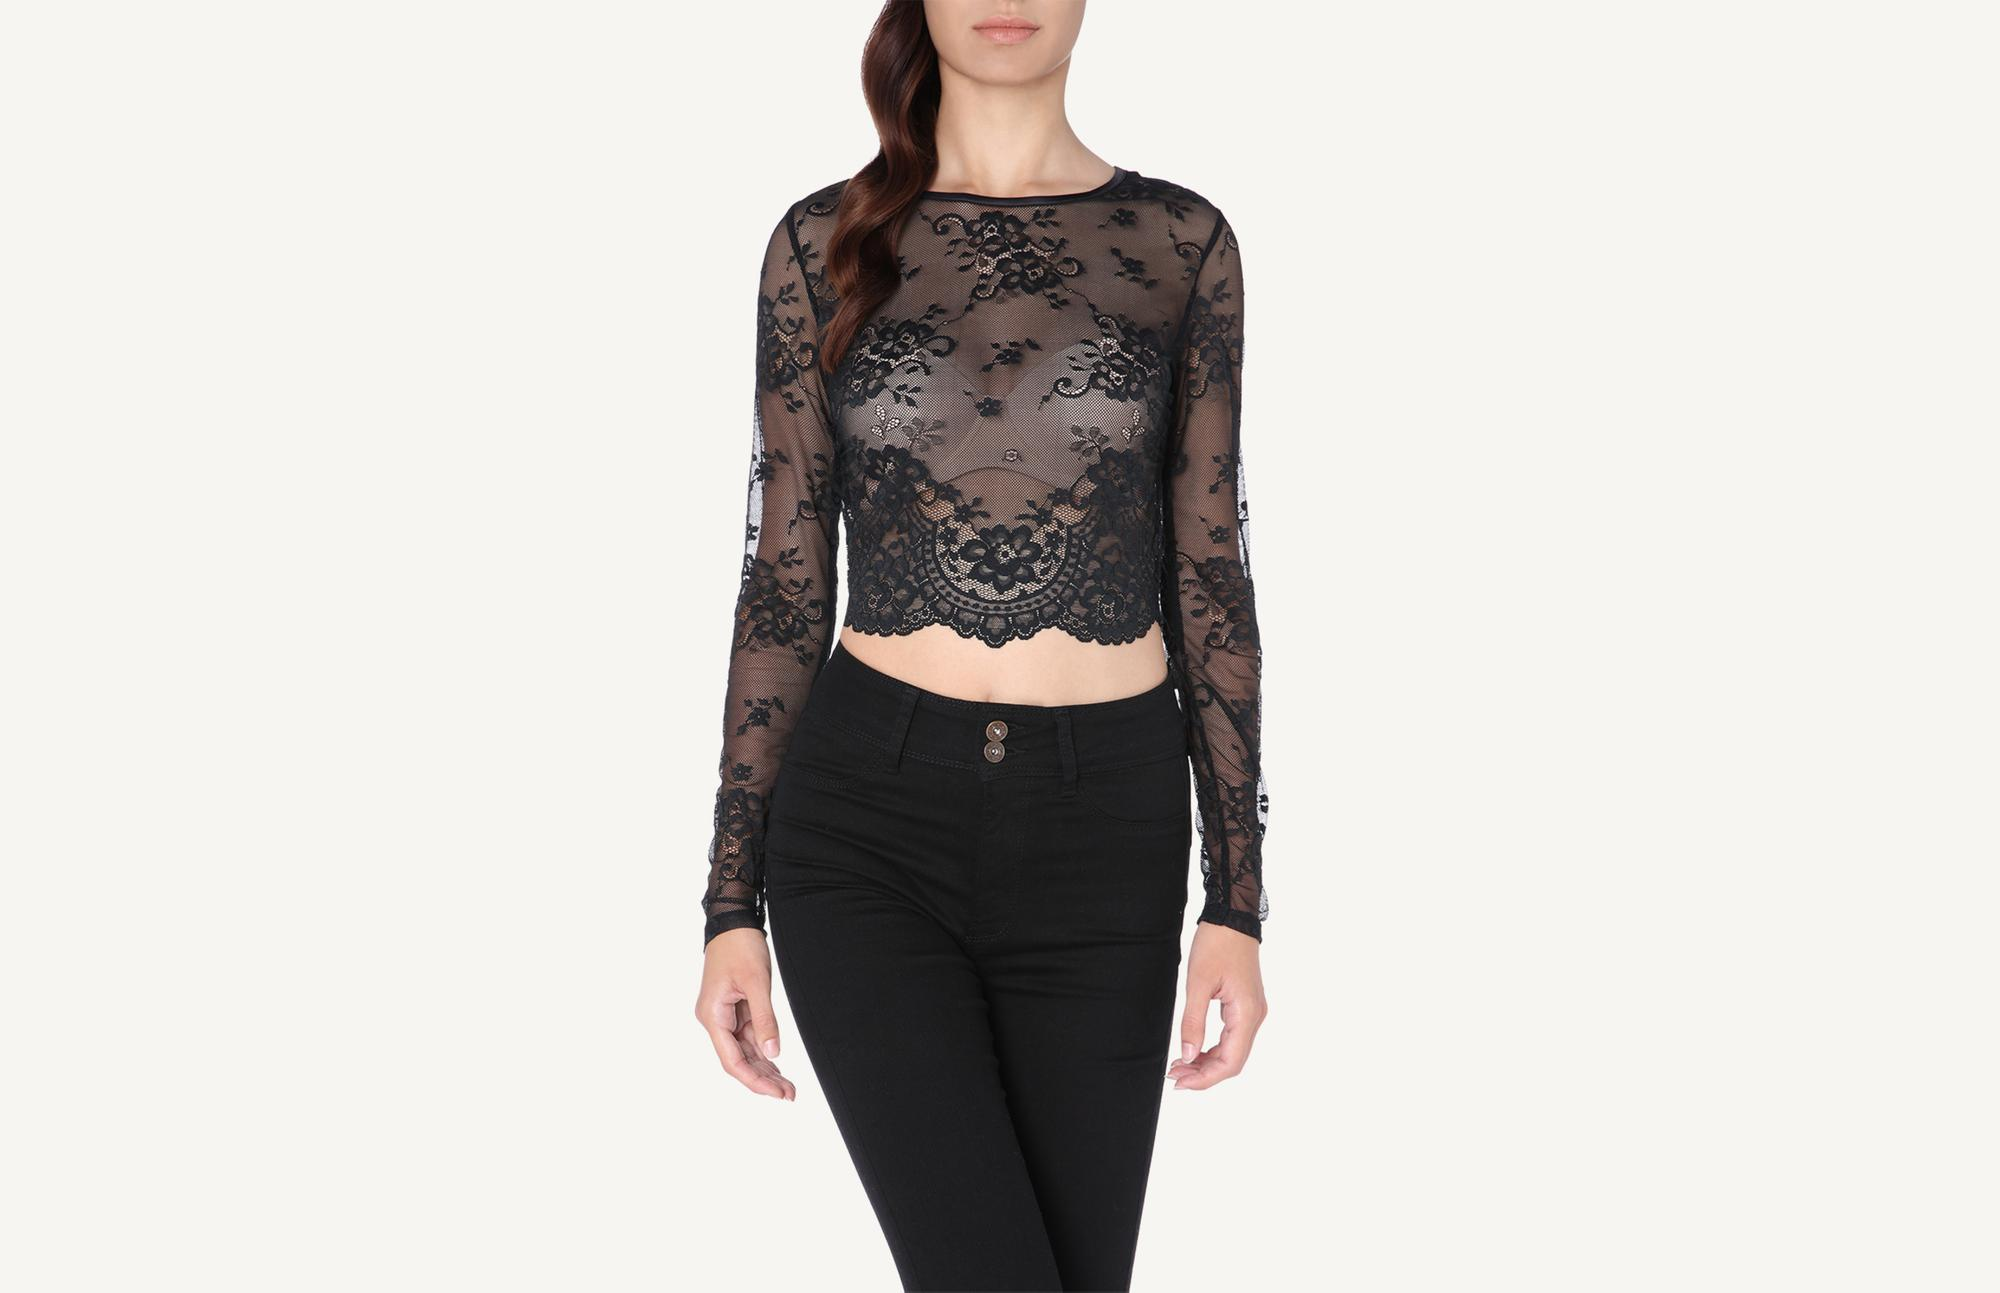 377c9fc182 Long-Sleeve Lace Crop Top - Intimissimi